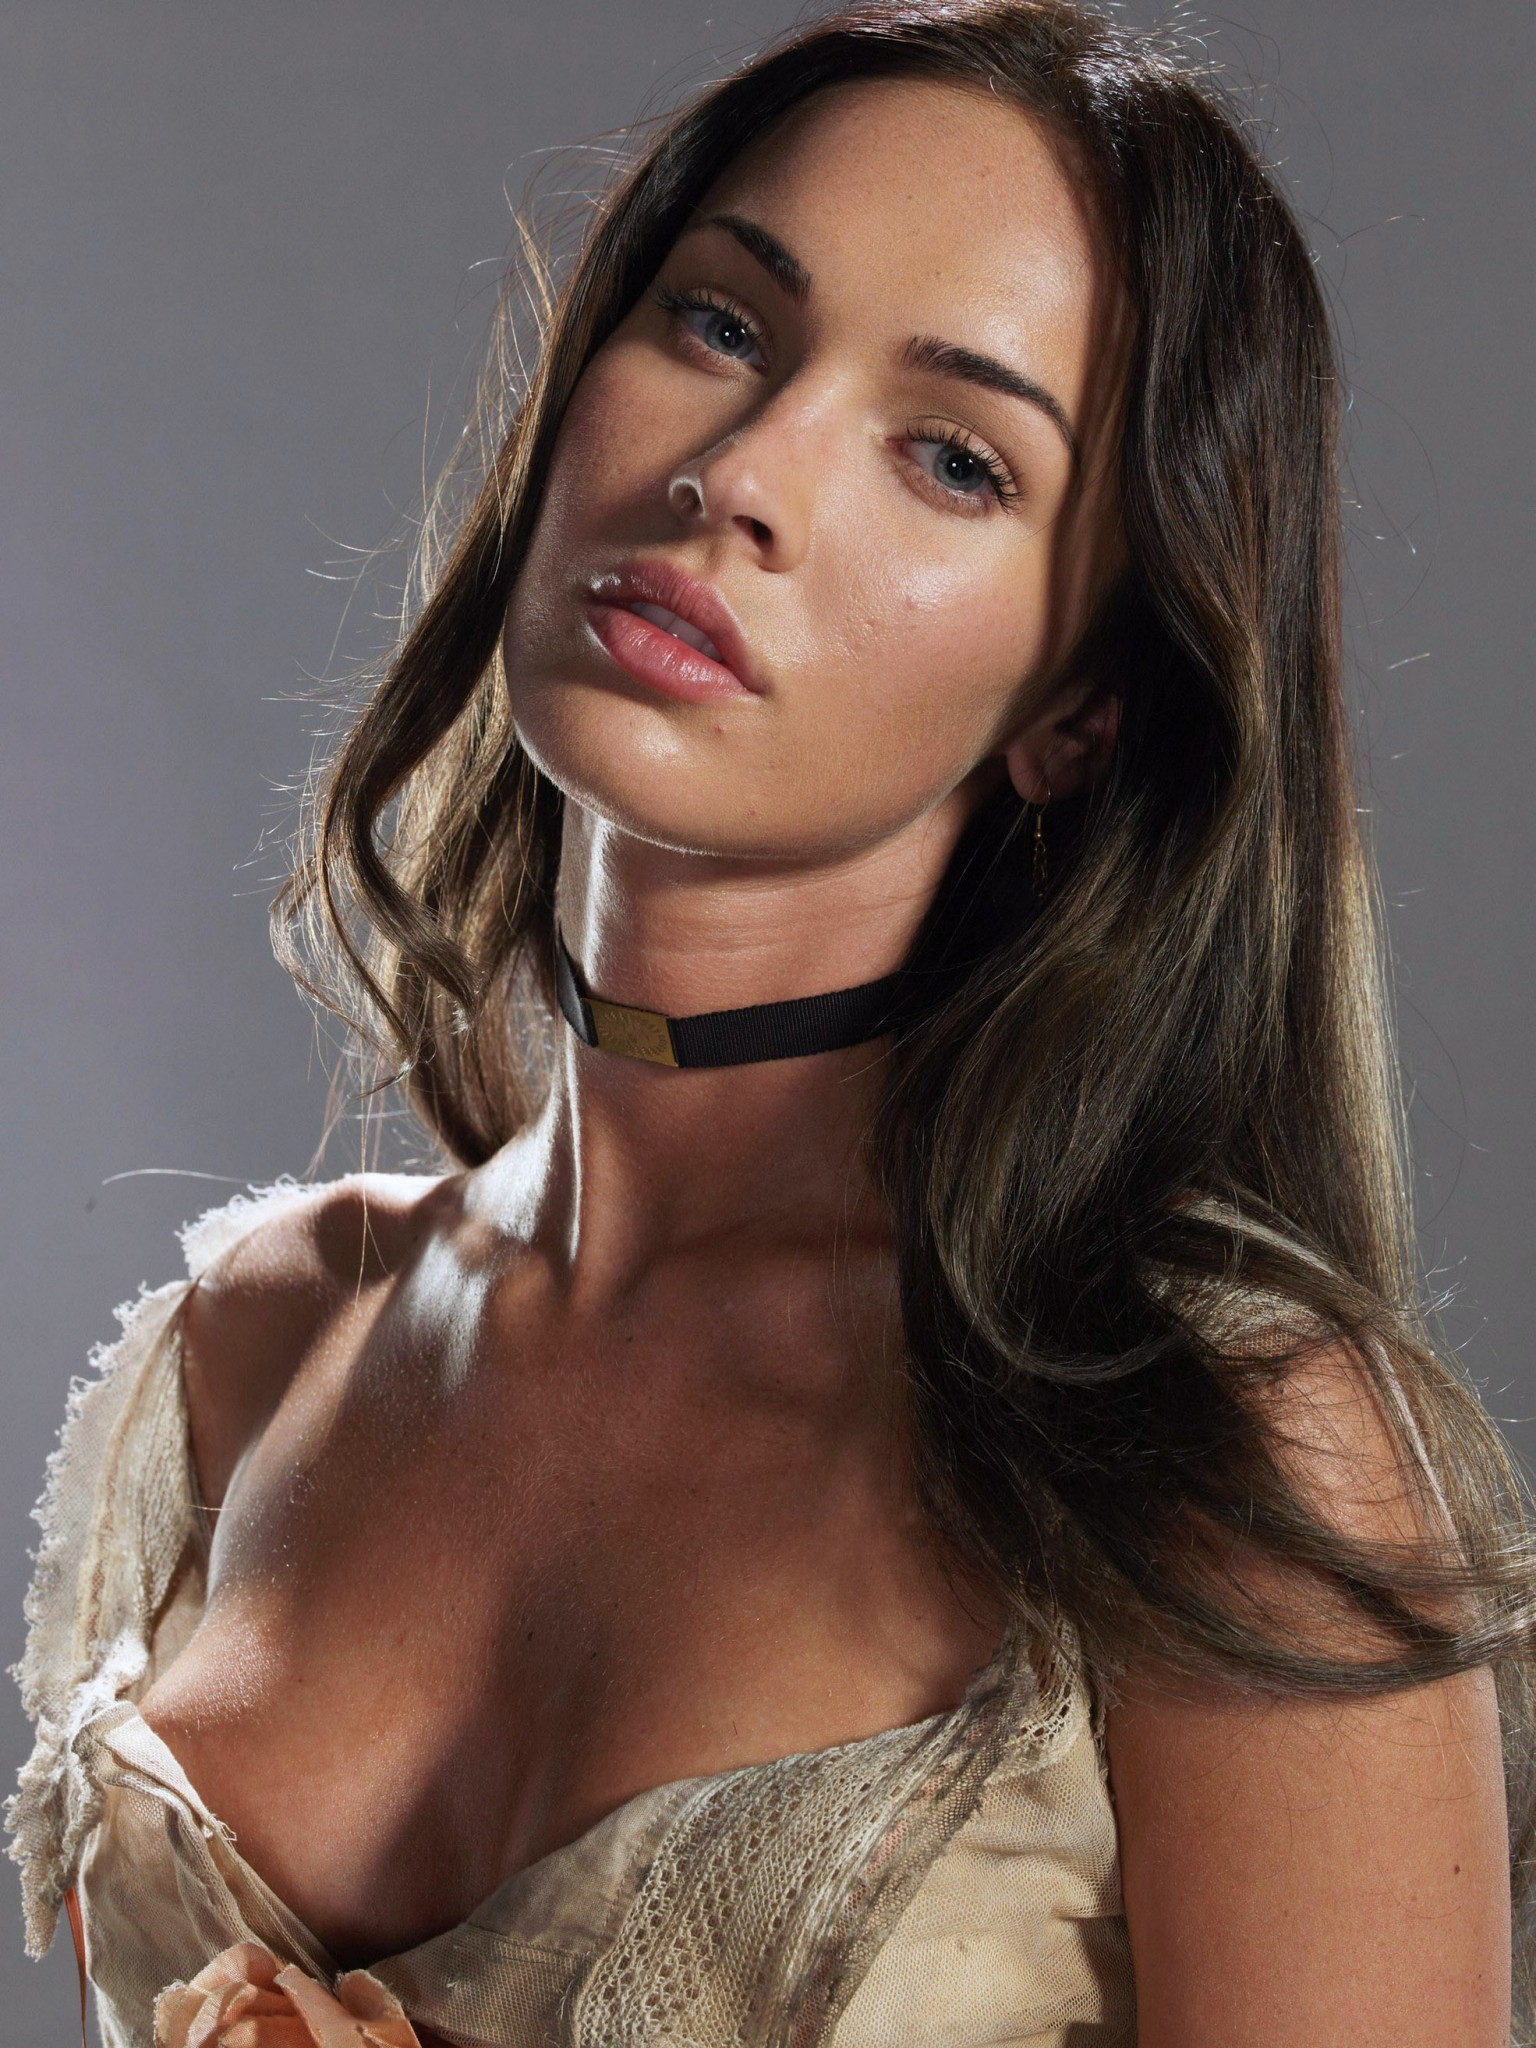 megan-fox-jonah-hex-photoshoot-23.jpg